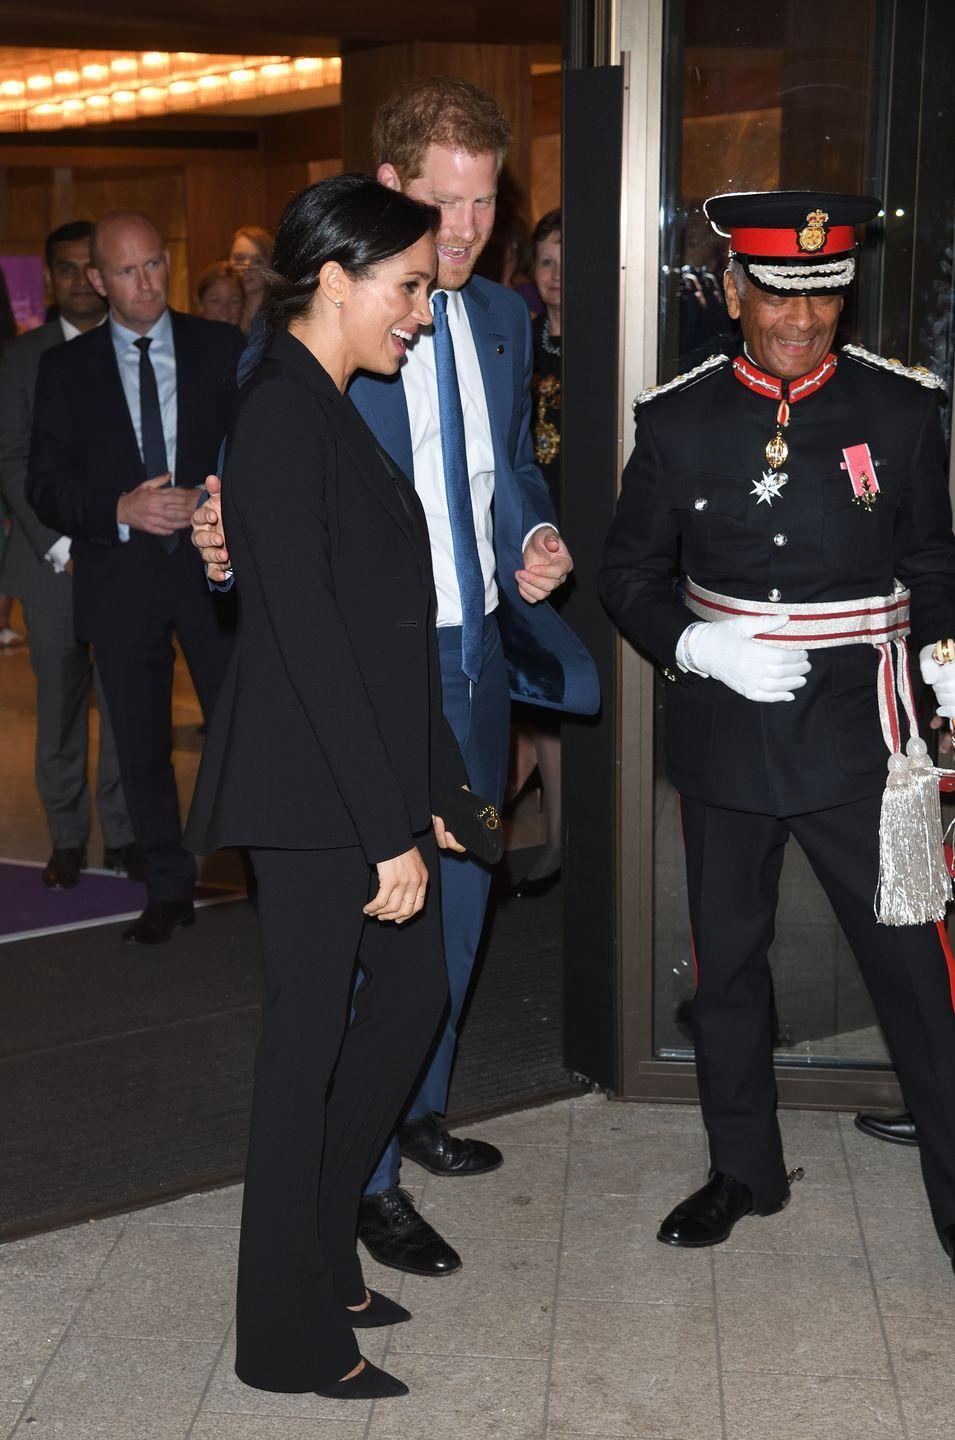 """<p>Following the charity awards, <a href=""""https://www.elle.com/uk/life-and-culture/culture/a22980864/meghan-markle-prince-harry-wellchild-black-suit-awards/"""" rel=""""nofollow noopener"""" target=""""_blank"""" data-ylk=""""slk:Prince Harry"""" class=""""link rapid-noclick-resp"""">Prince Harry</a> placed a loving hand on his wife's back to subtly say 'I got you', September 2018. *Sigh*.</p>"""